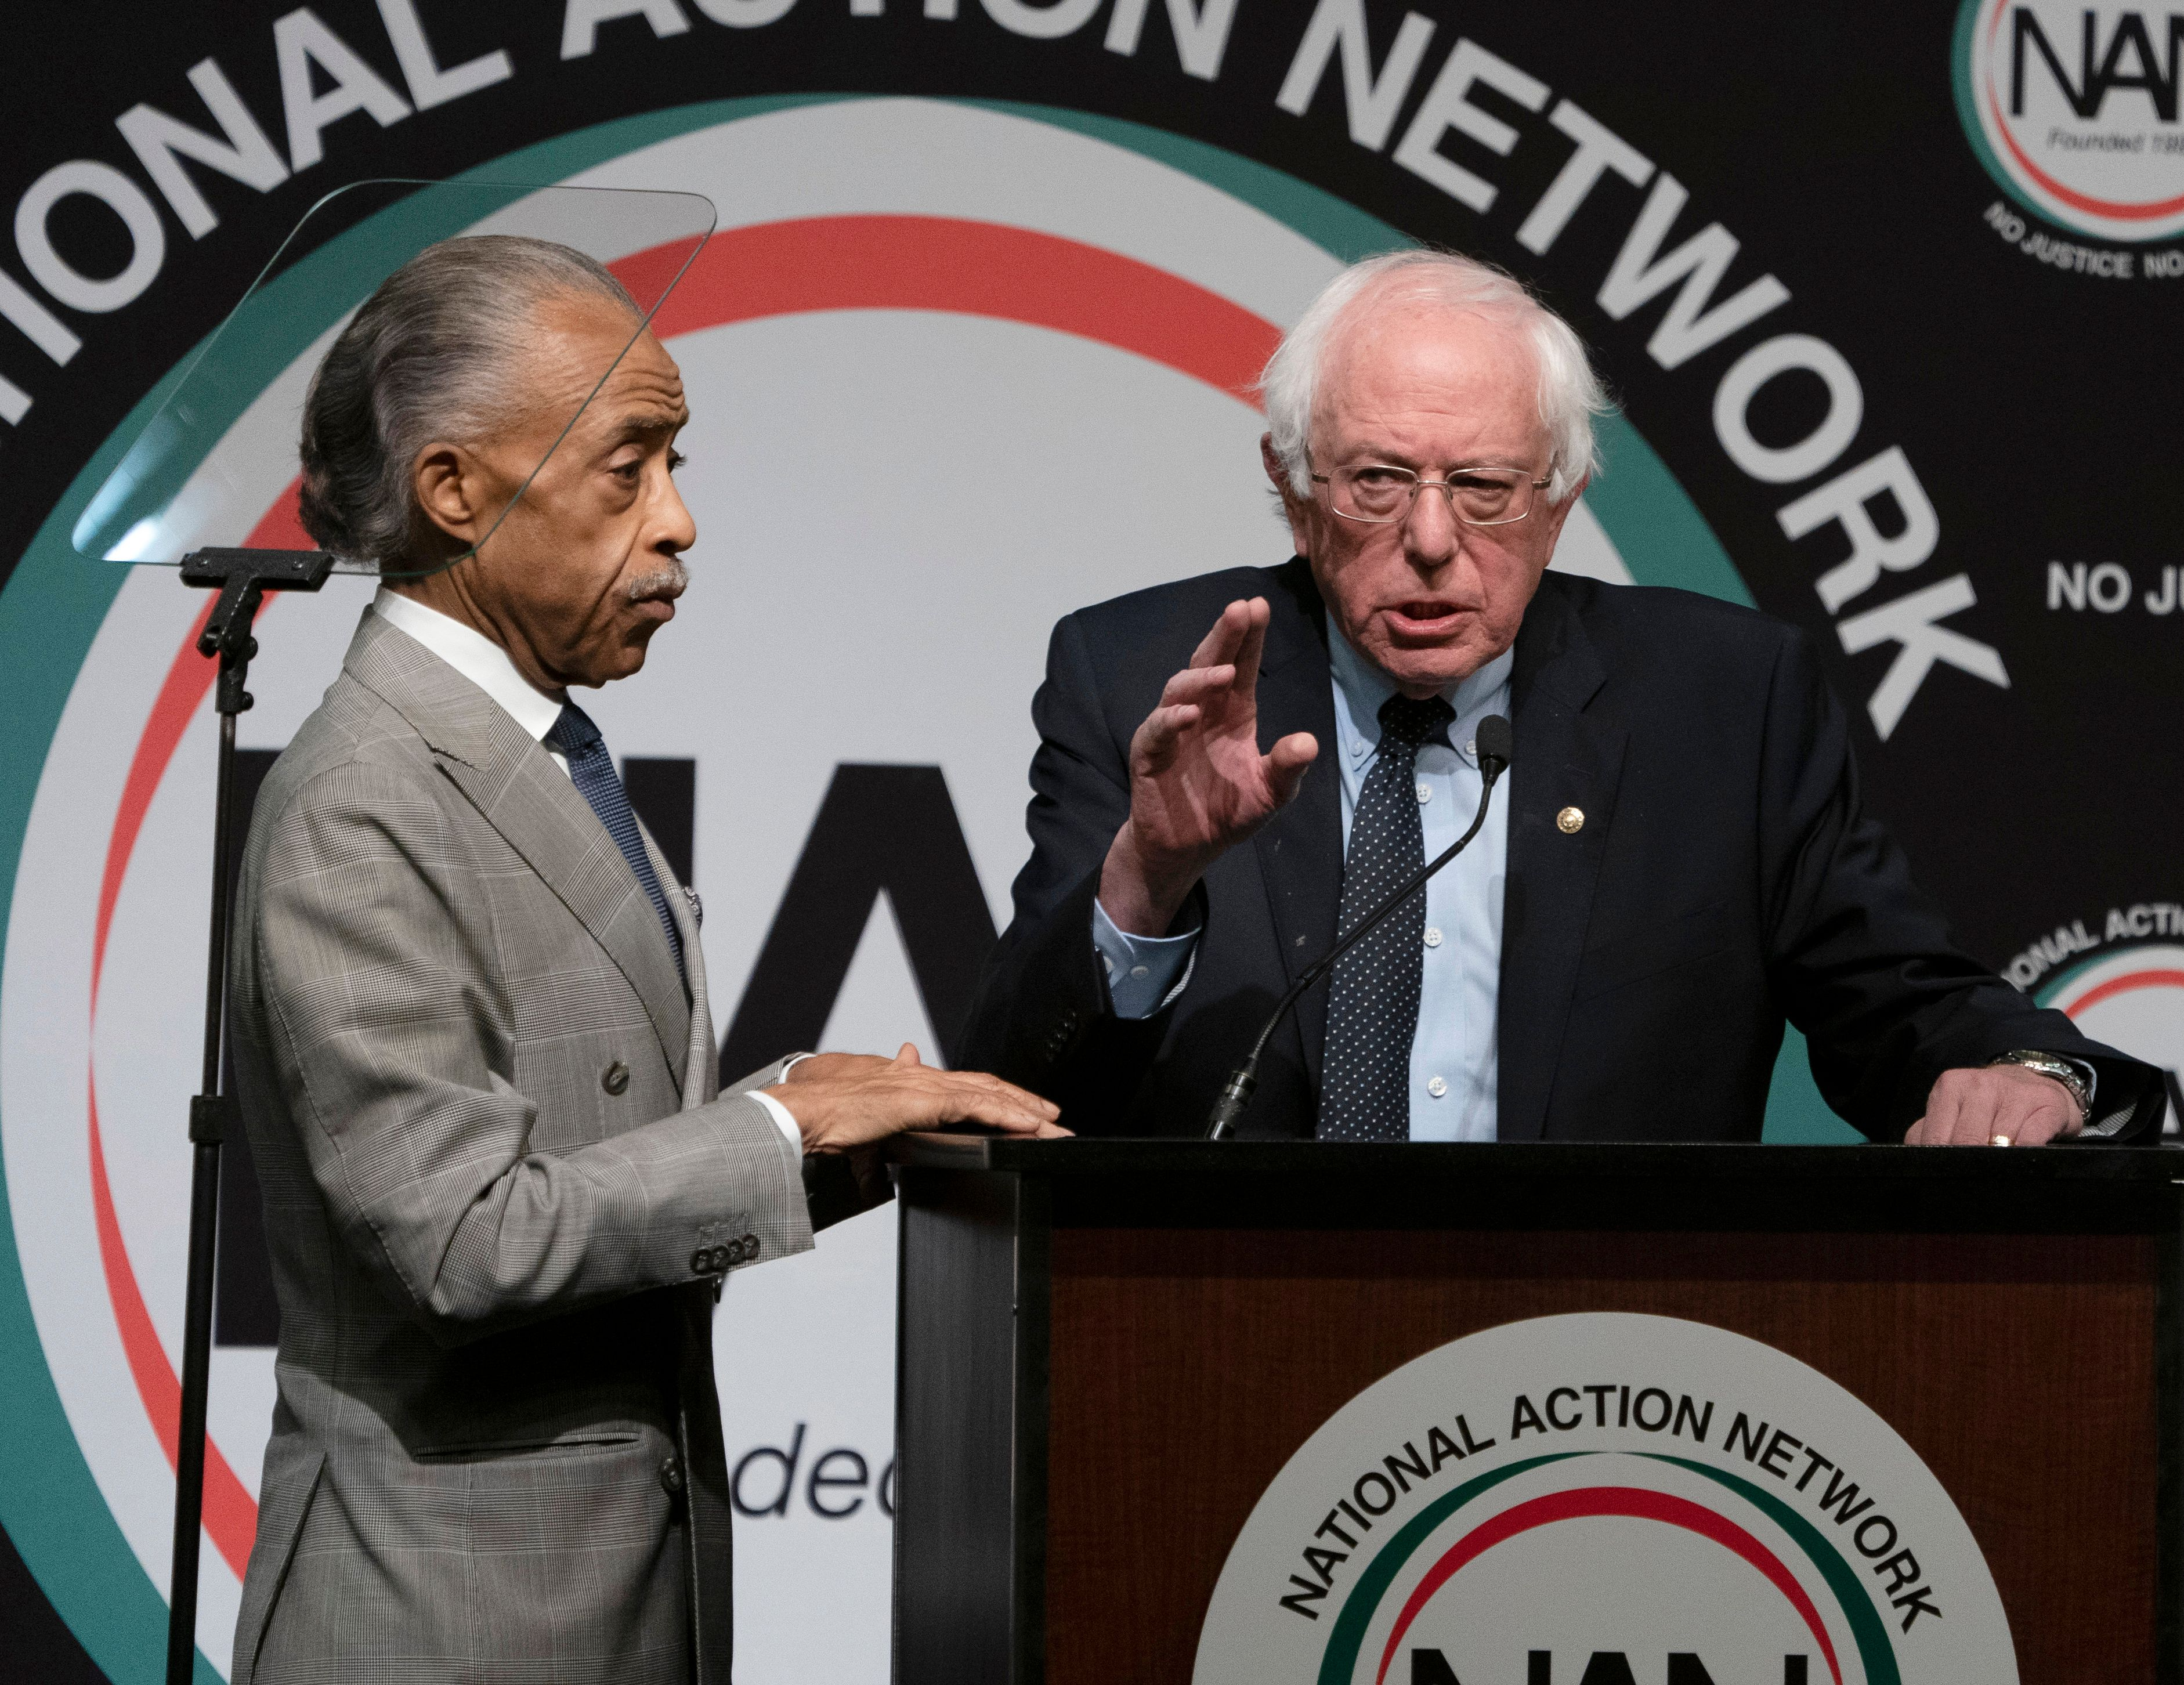 Democratic Presidential candidate Bernie Sanders (R) is joined by the Reverend Al Sharpton during a gathering of the National Action Network April 5, 2019 in New York. (Photo by Don Emmert / AFP) (Photo credit should read DON EMMERT/AFP/Getty Images)